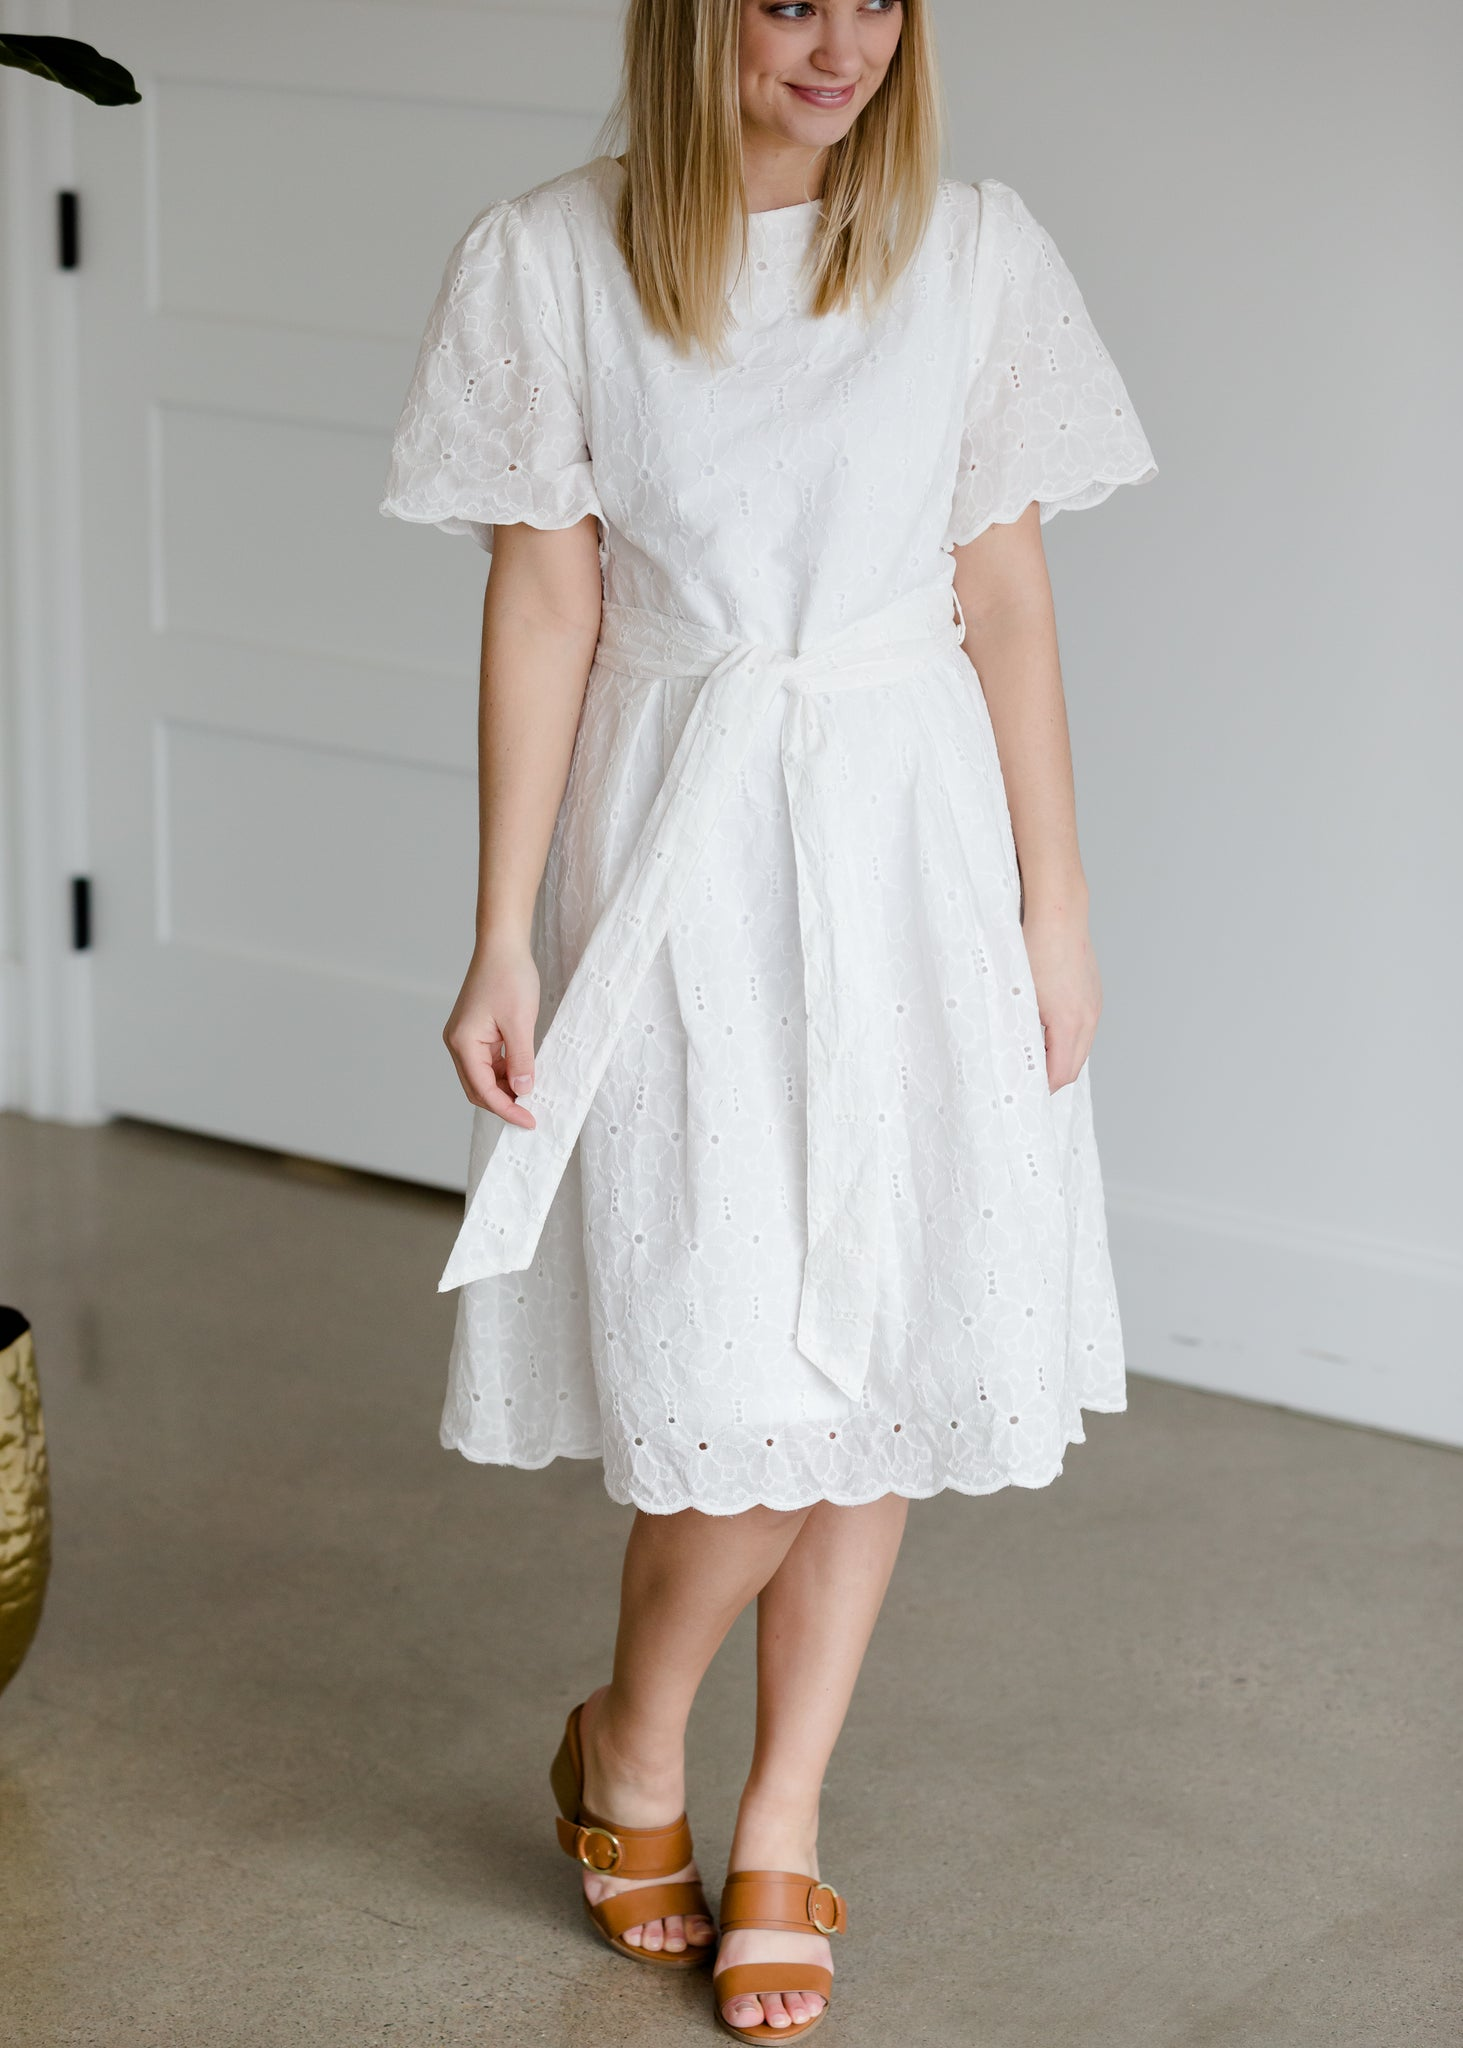 White Lace Detailed Midi Dress - FINAL SALE